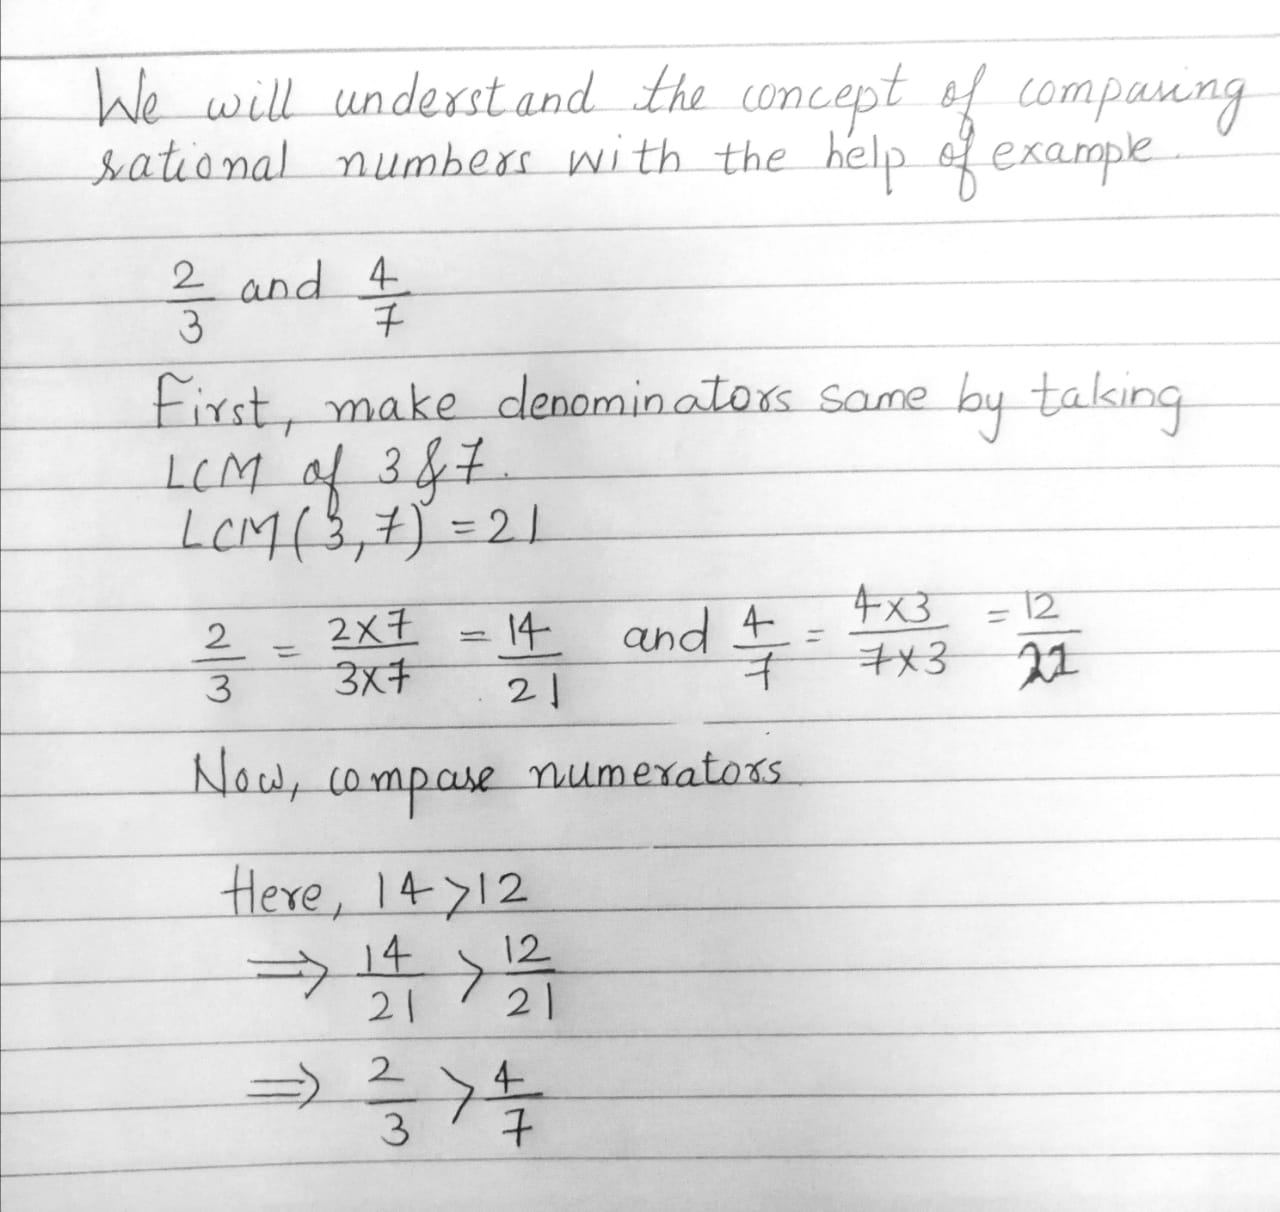 hight resolution of how to compare the pairs of rational numbers lbh7fq44 - - TopperLearning.com